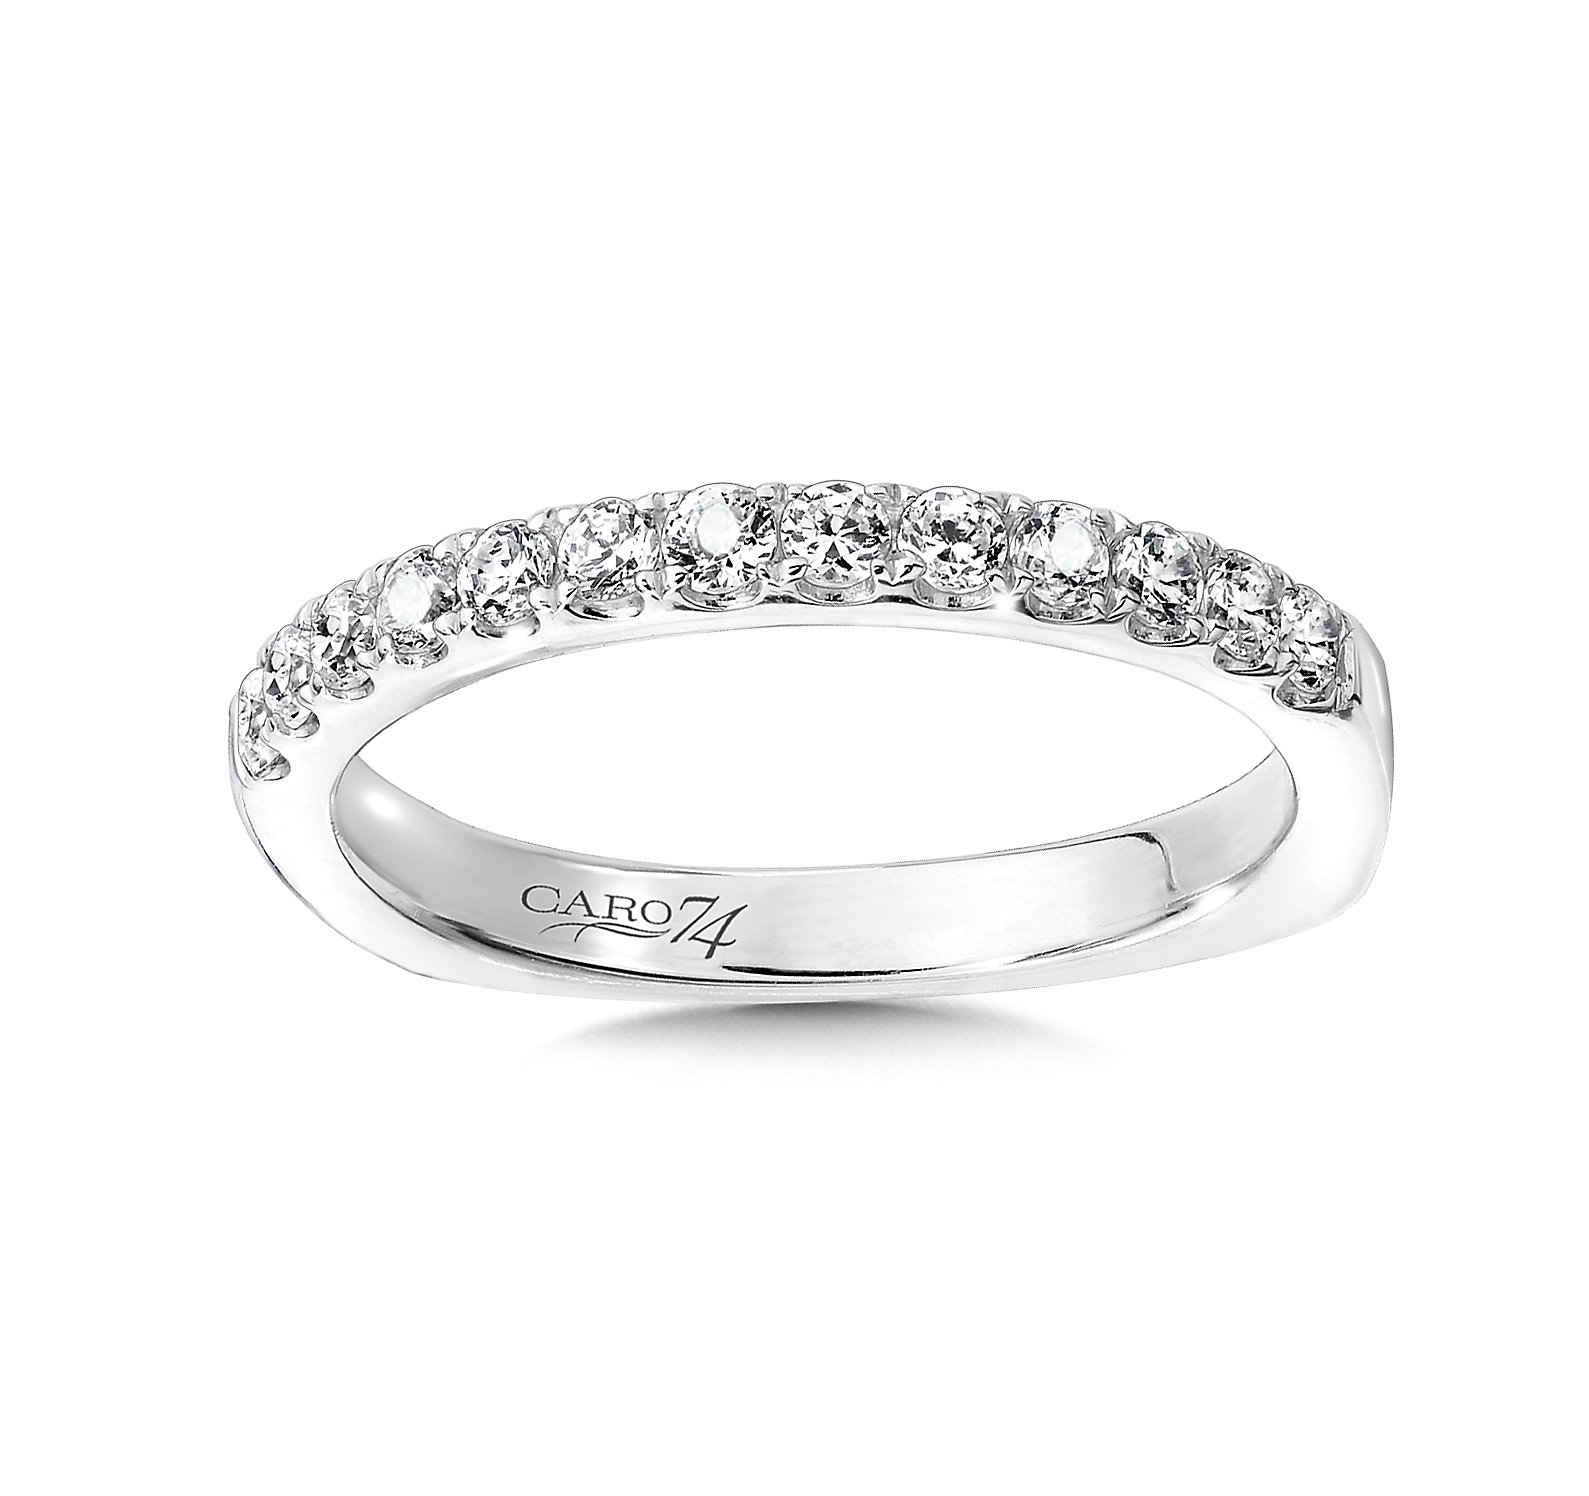 Wholesale Wedding Bands - Wholesale Jewelry in Frisco